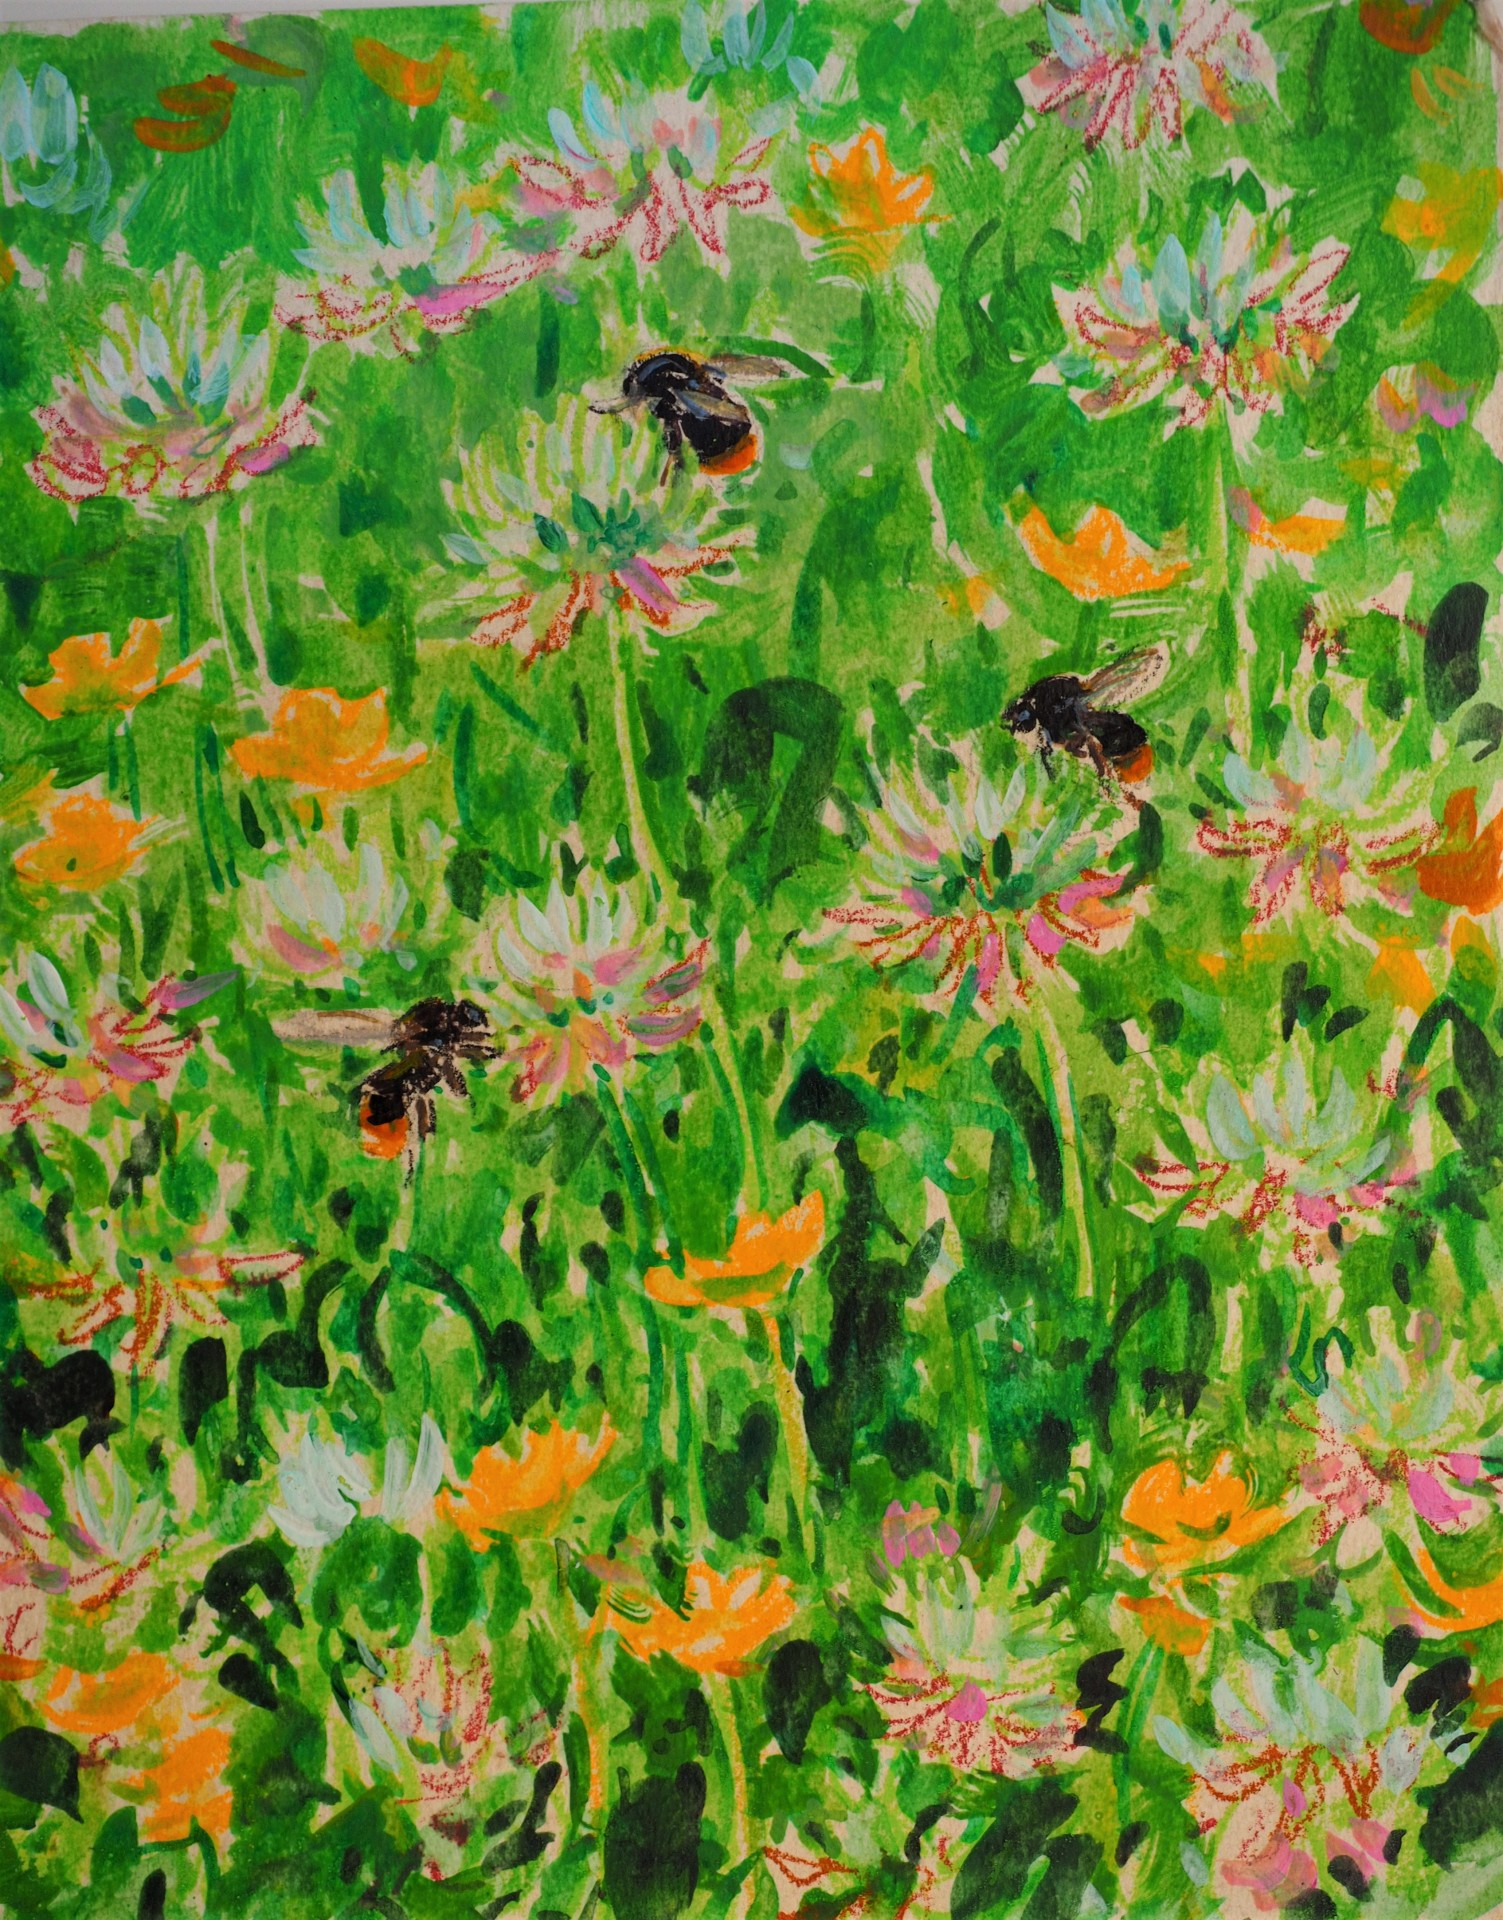 Bumble Bees and Clover